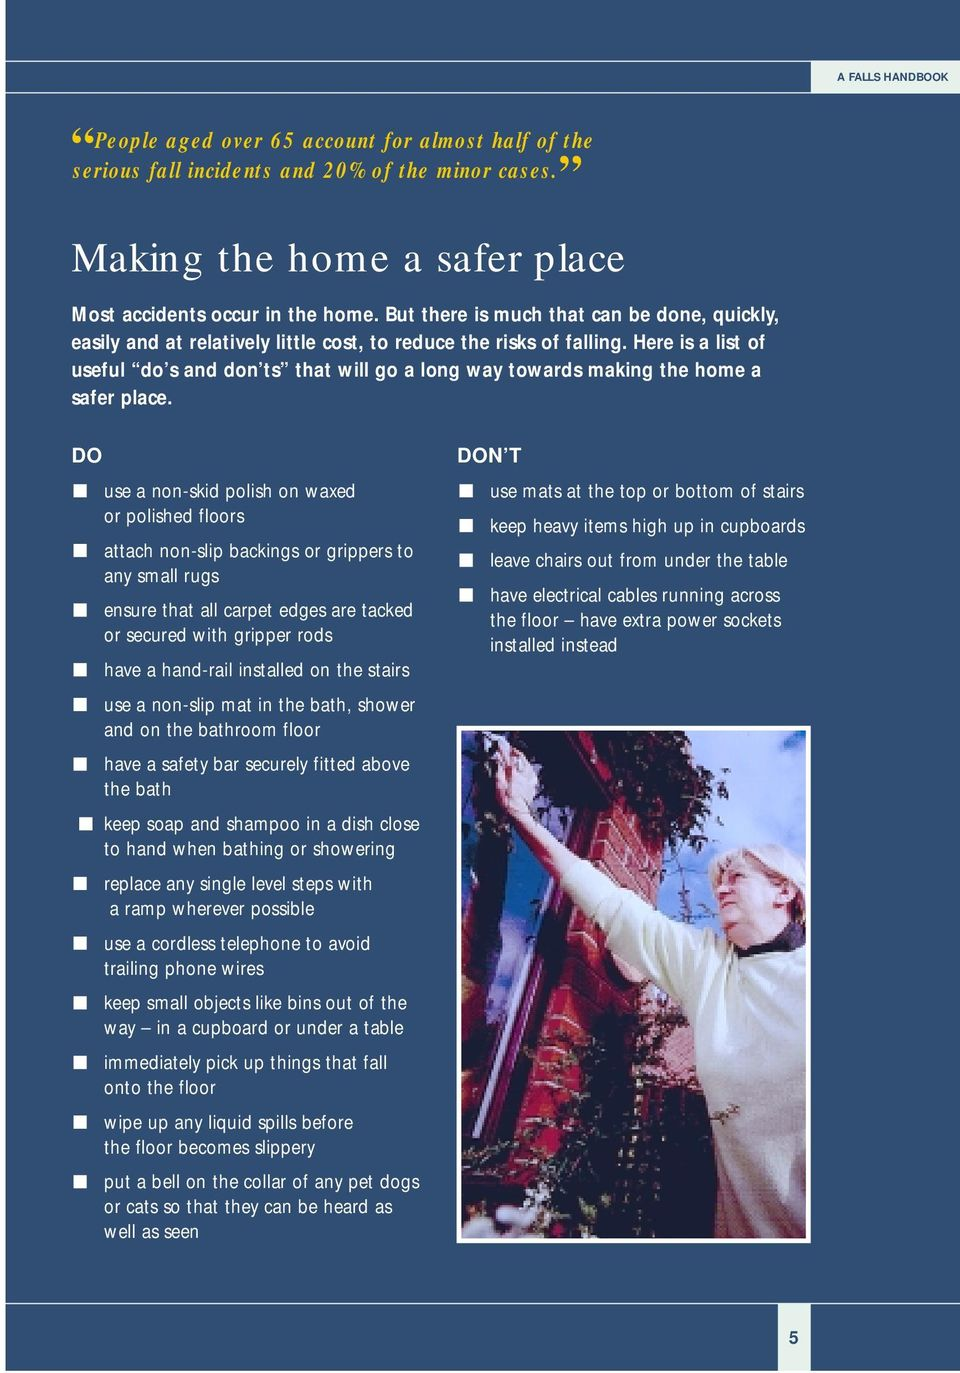 Here is a list of useful do s and don ts that will go a long way towards making the home a safer place.